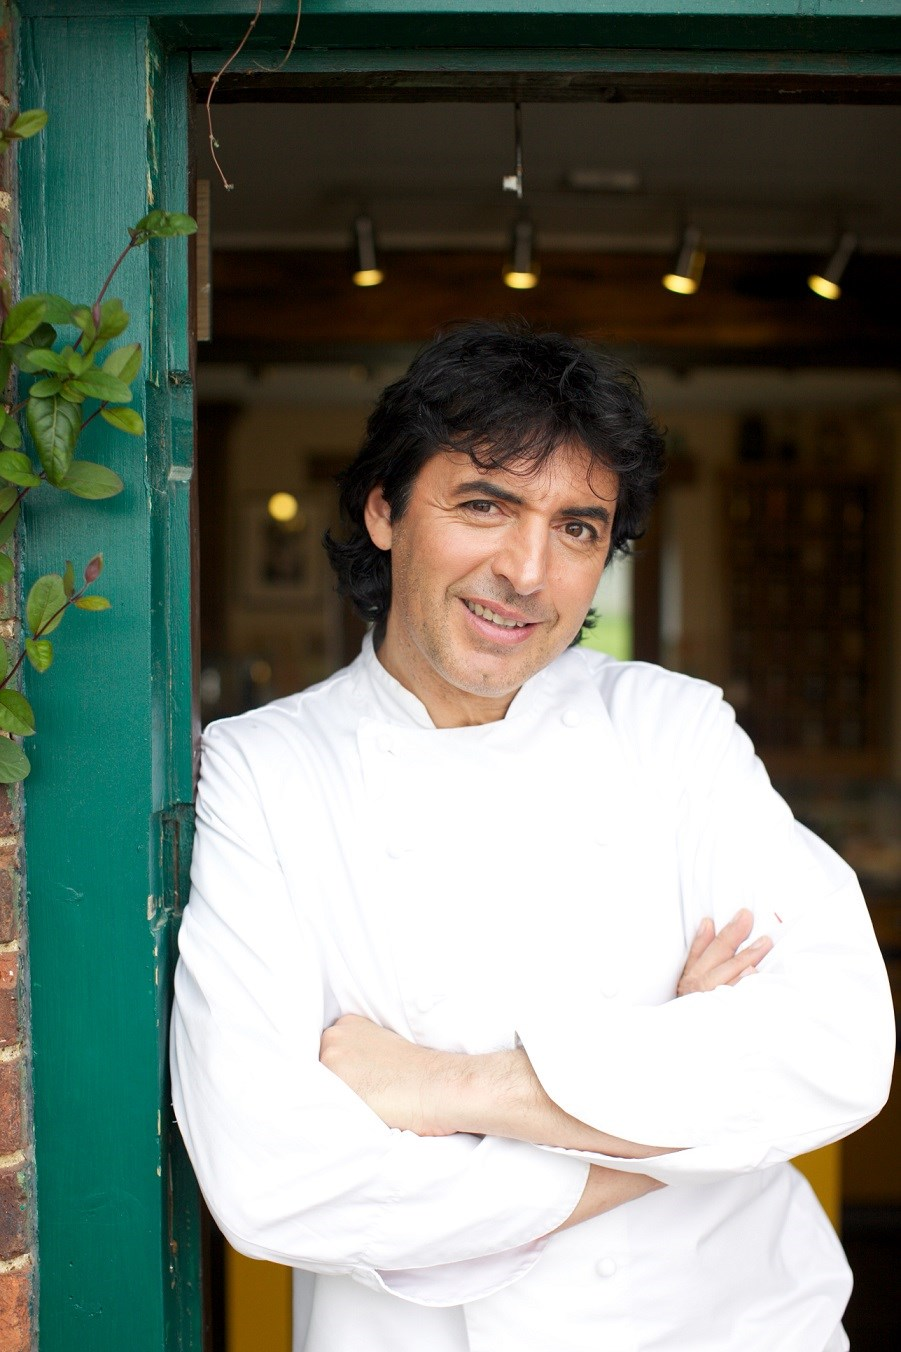 Jean-Christophe Novelli joins Coventry Food & Drink Festival line-up